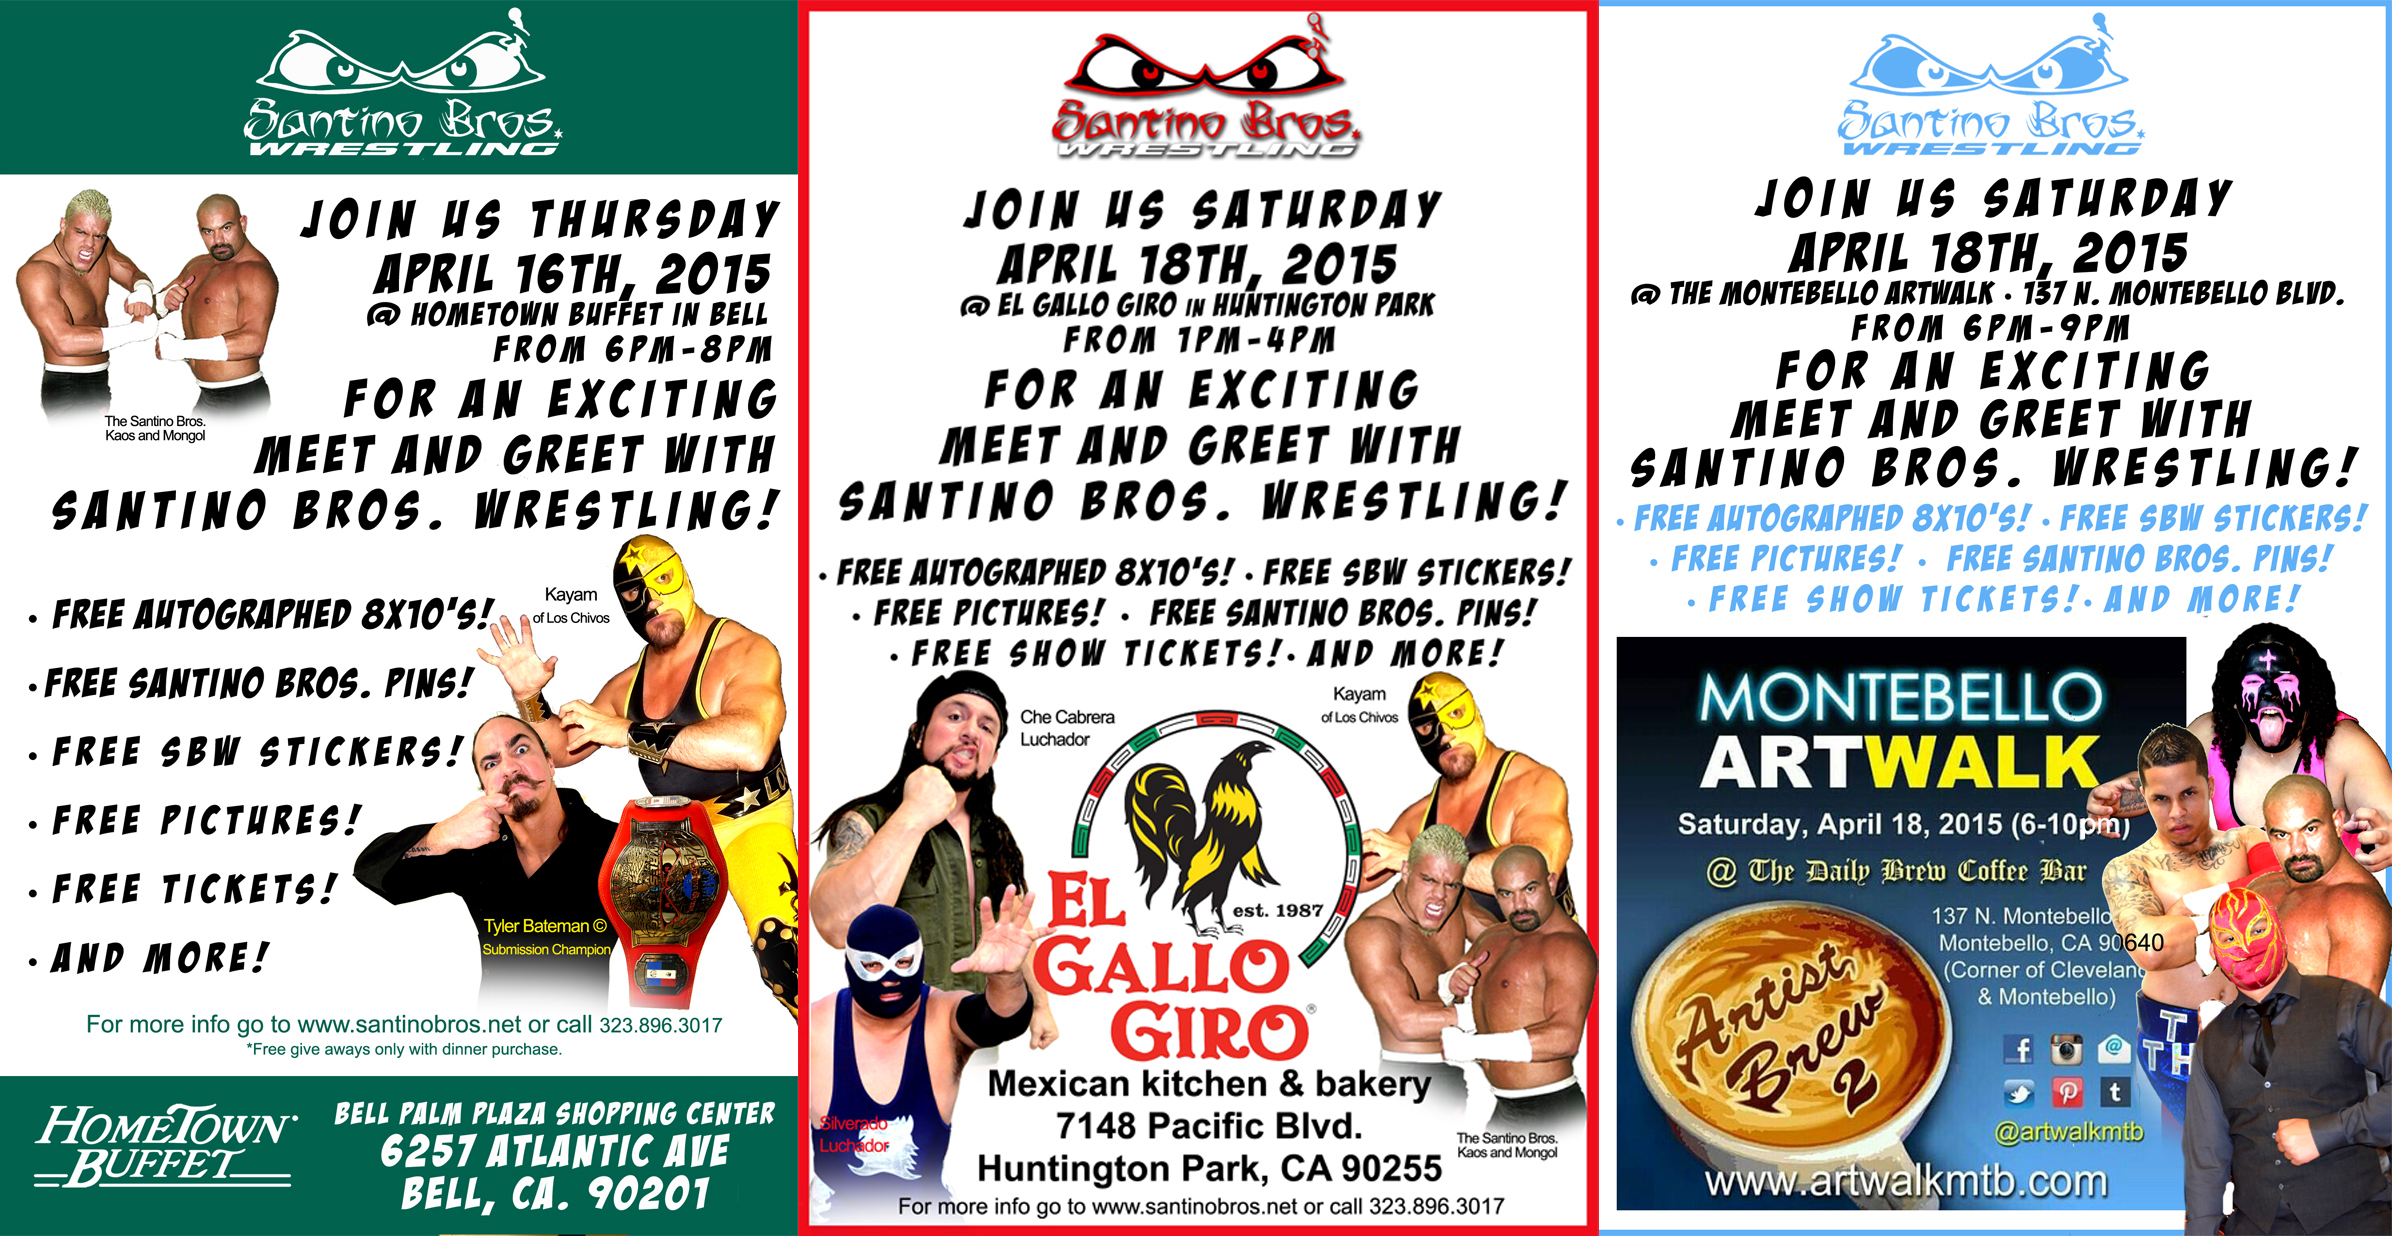 Meet and greet the santino bros santino bros wrestling academy meet and greets m4hsunfo